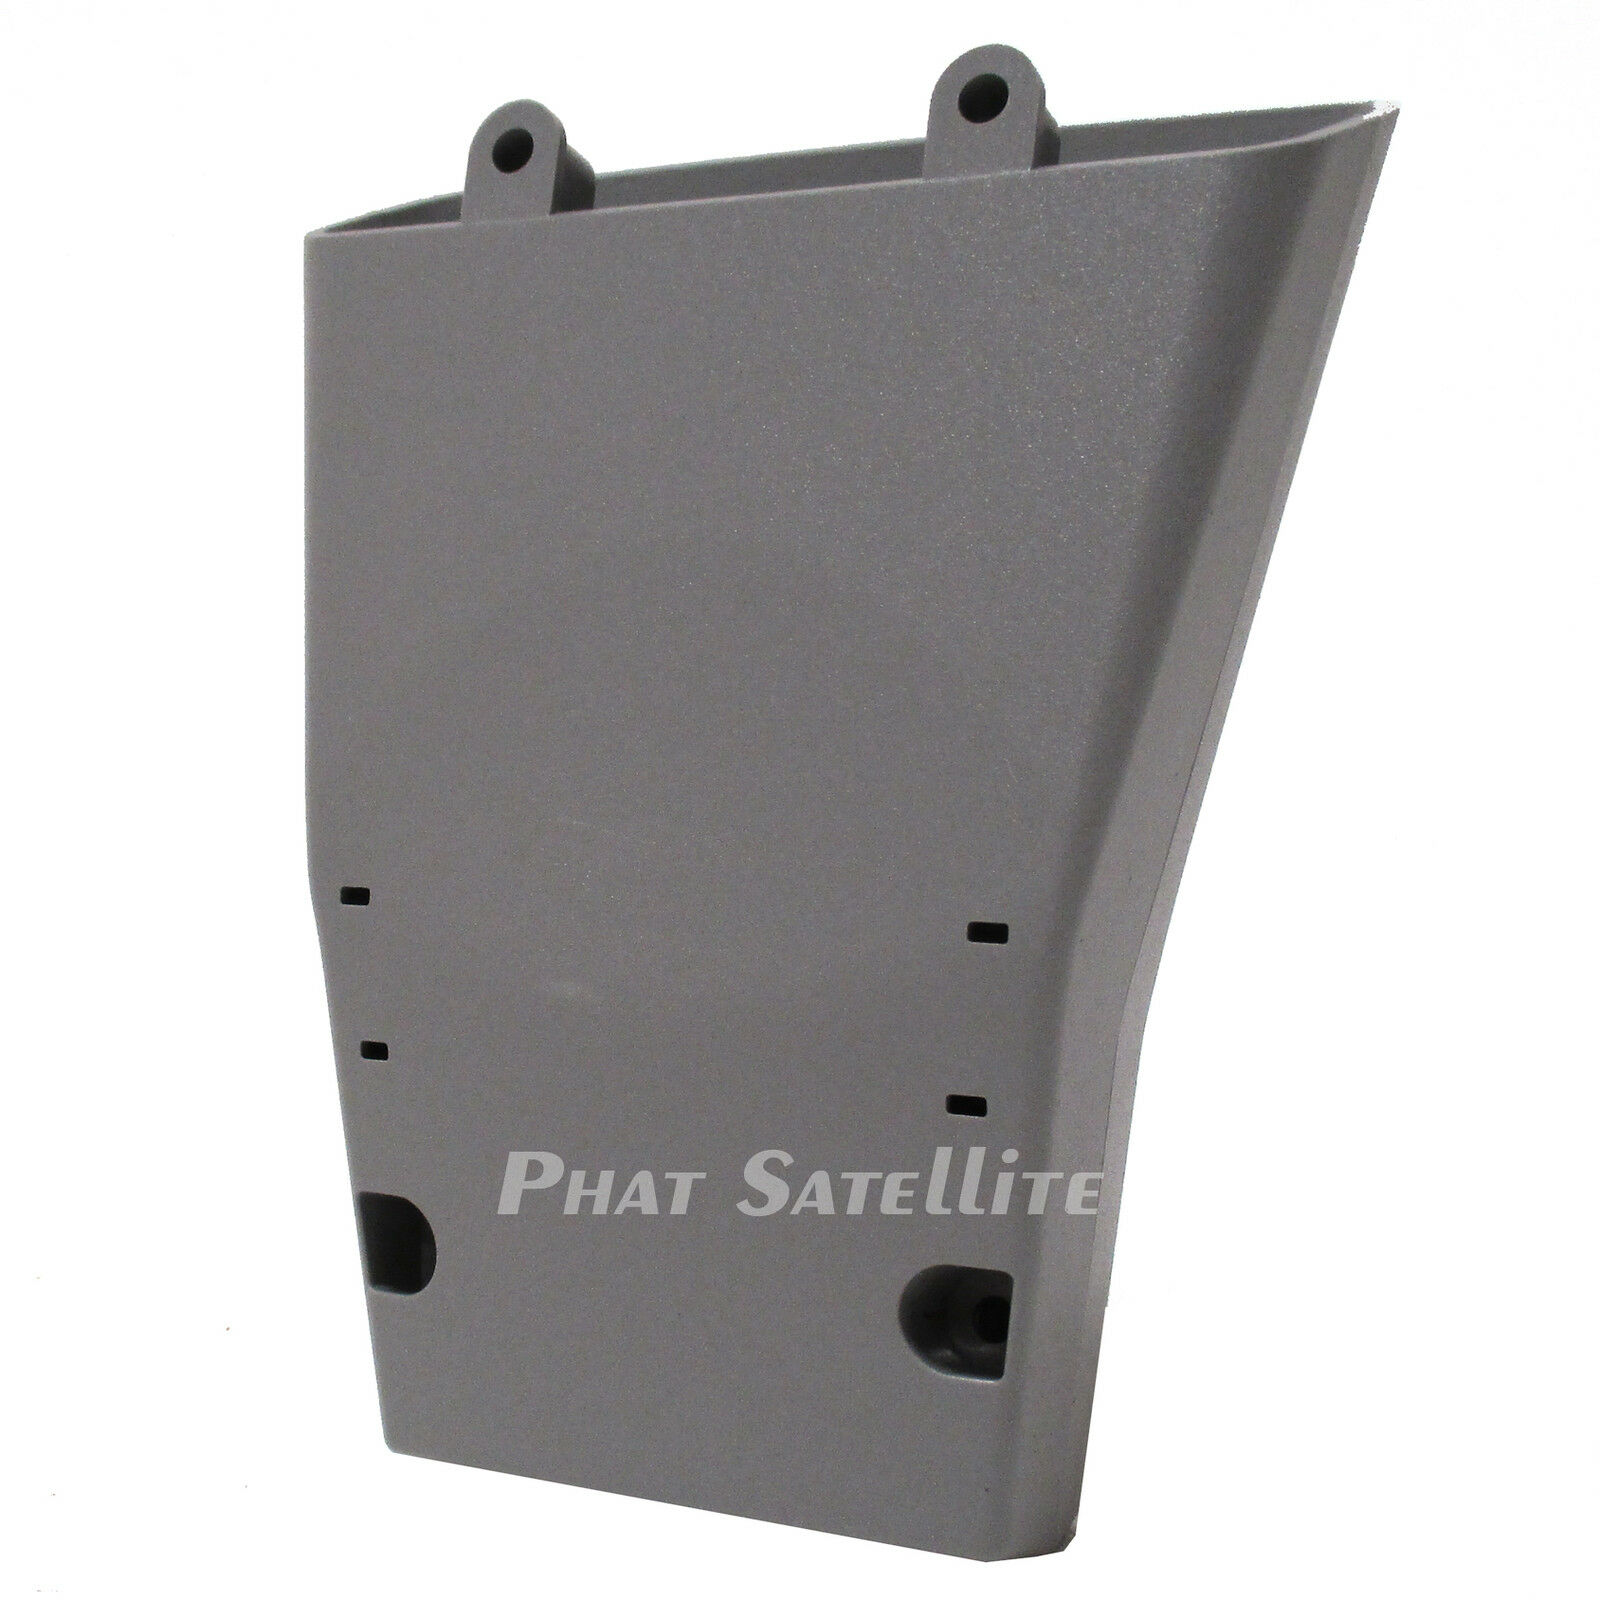 Dish Network 144577 1000.2 Integrated LNBF Mounting Bracket Gray ES144577